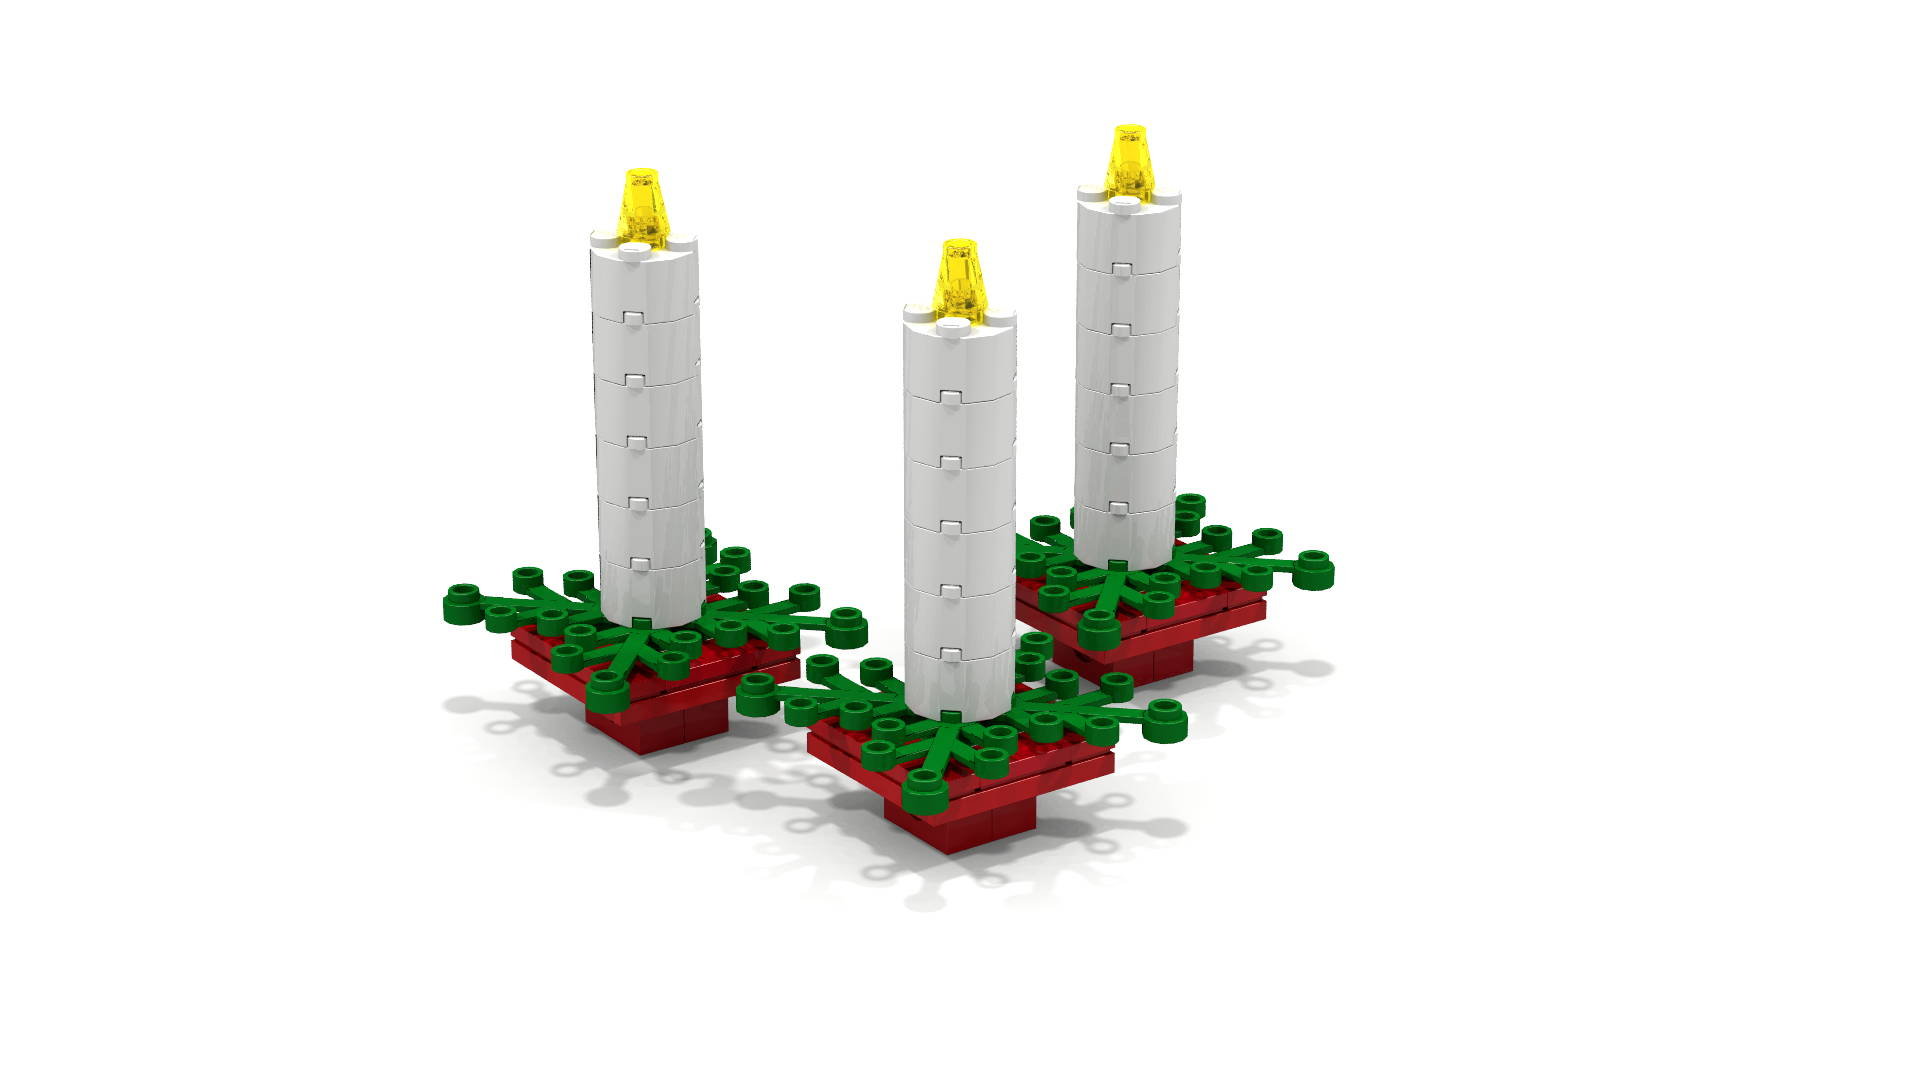 LEGO Candle Christmas Ornaments